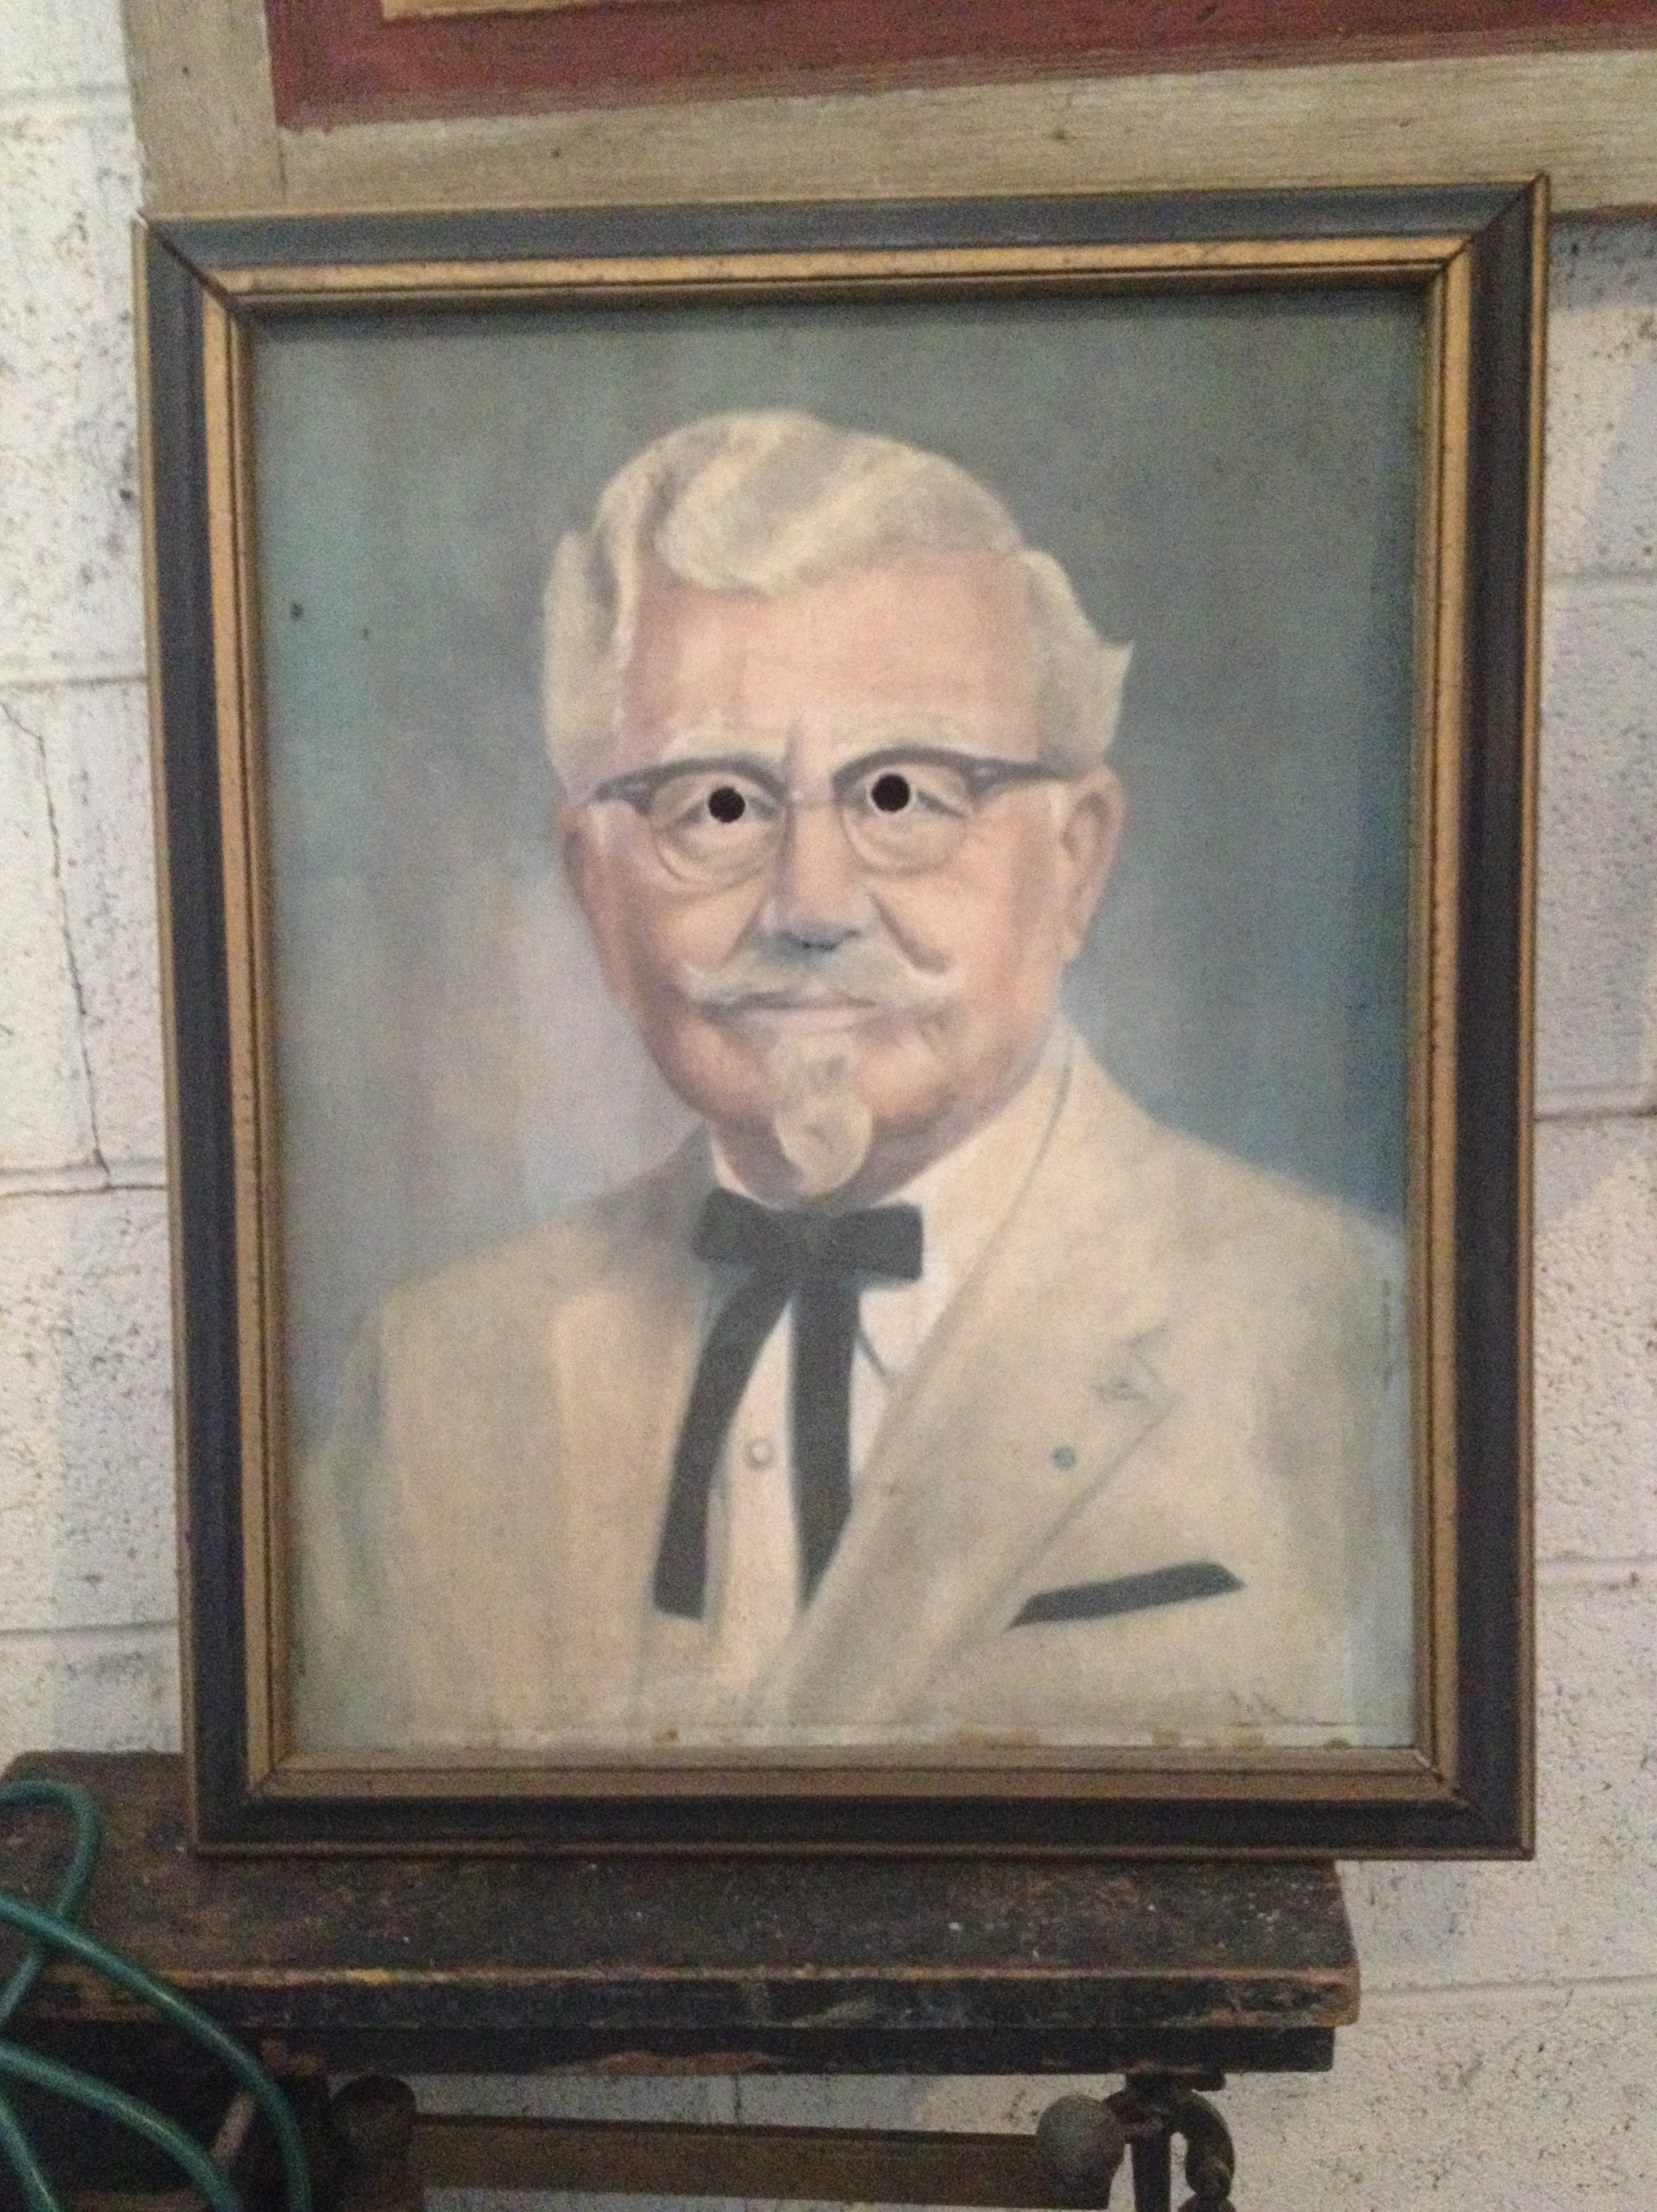 For some reason, our painting of Colonel Sanders has trick eyes. Spooky! Think you can find it on the tour?